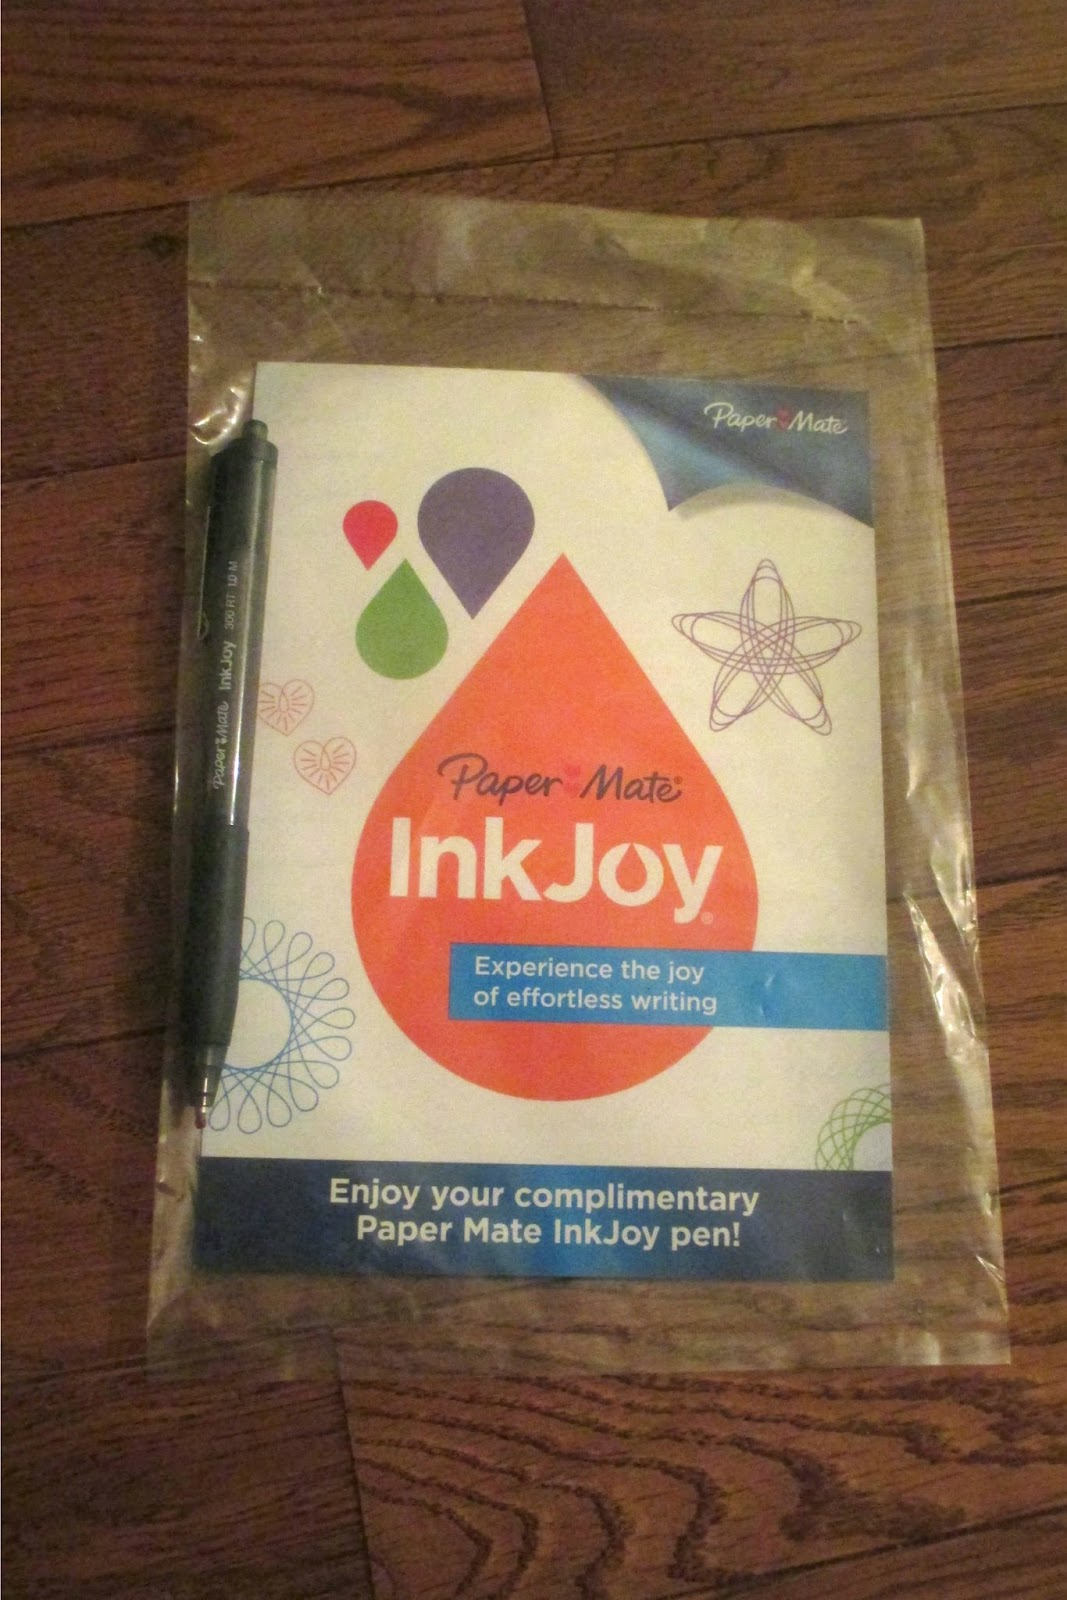 PaperMate InkJoy pen